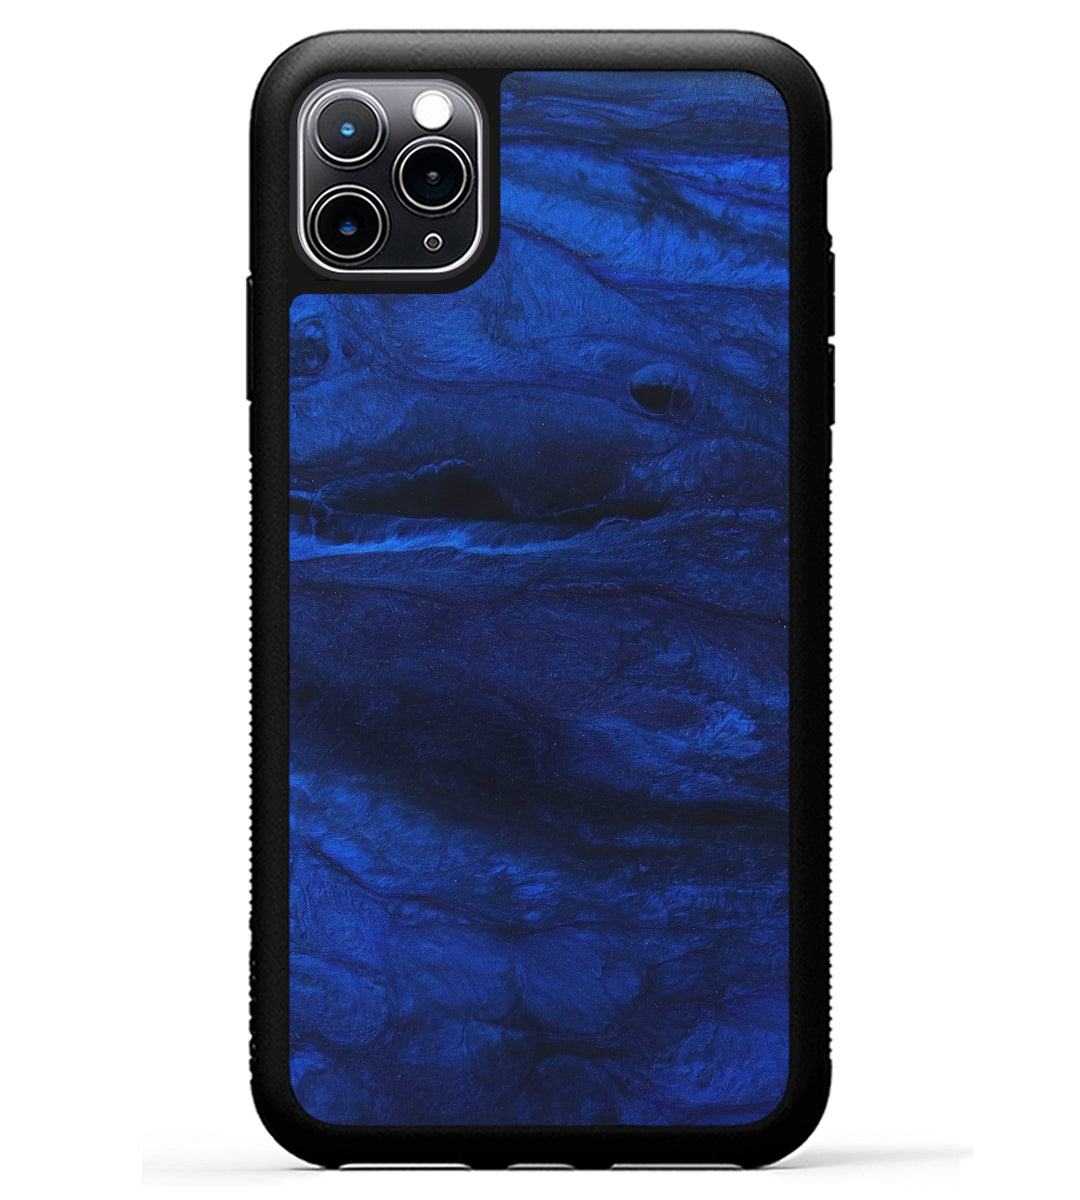 iPhone 11 Pro Max ResinArt Phone Case - Brechtje (Dark Blue, 347632)